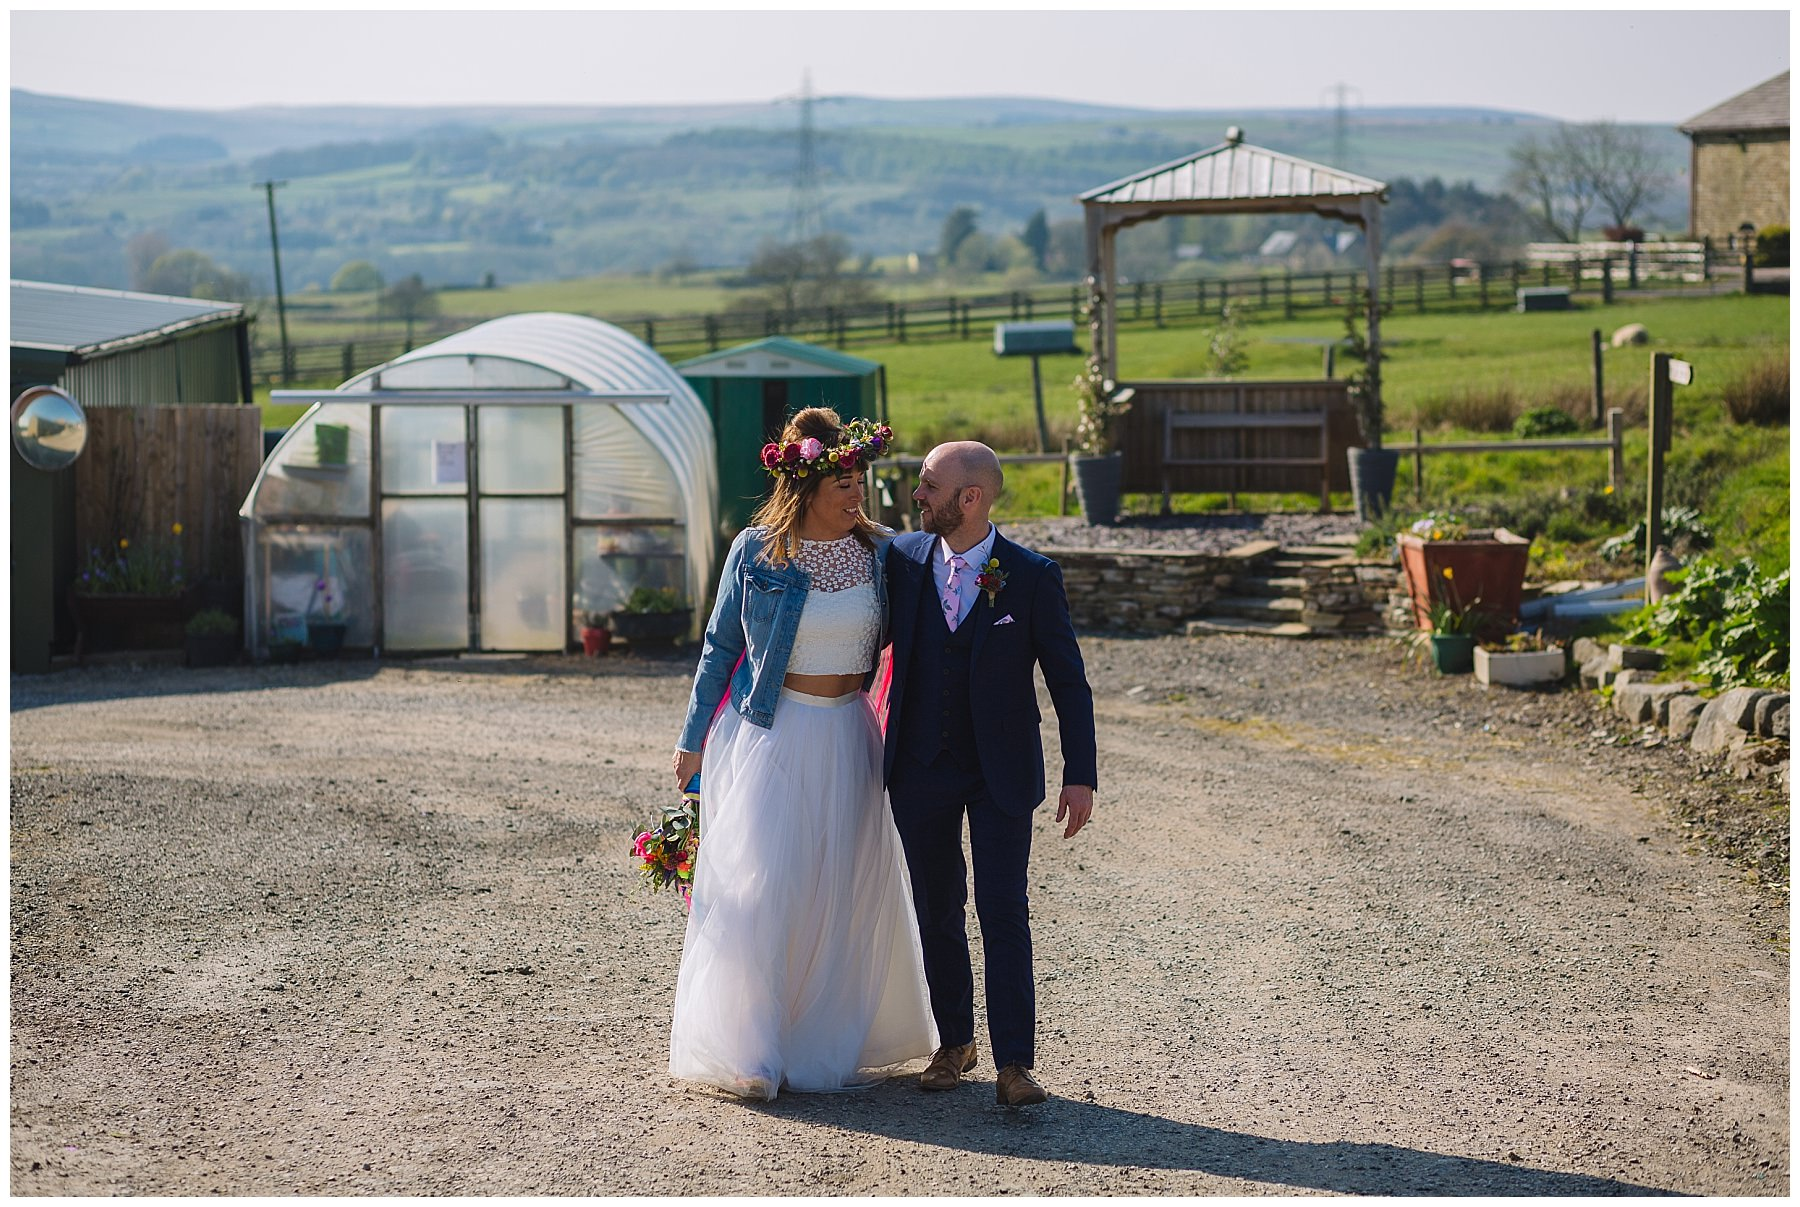 Bride and groom wander through the grounds of the wellbeing farm